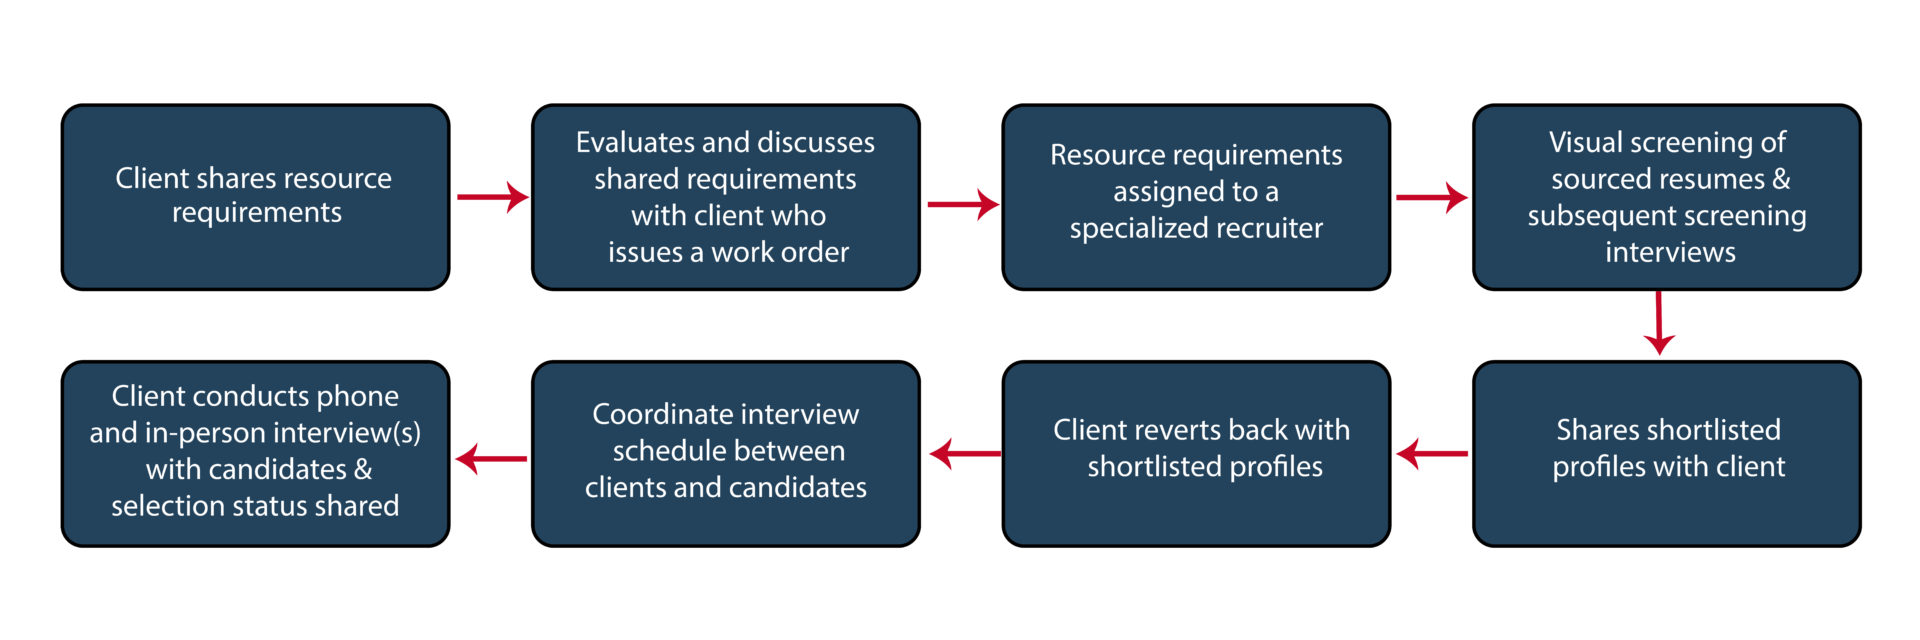 RecruitmentProcessCycle